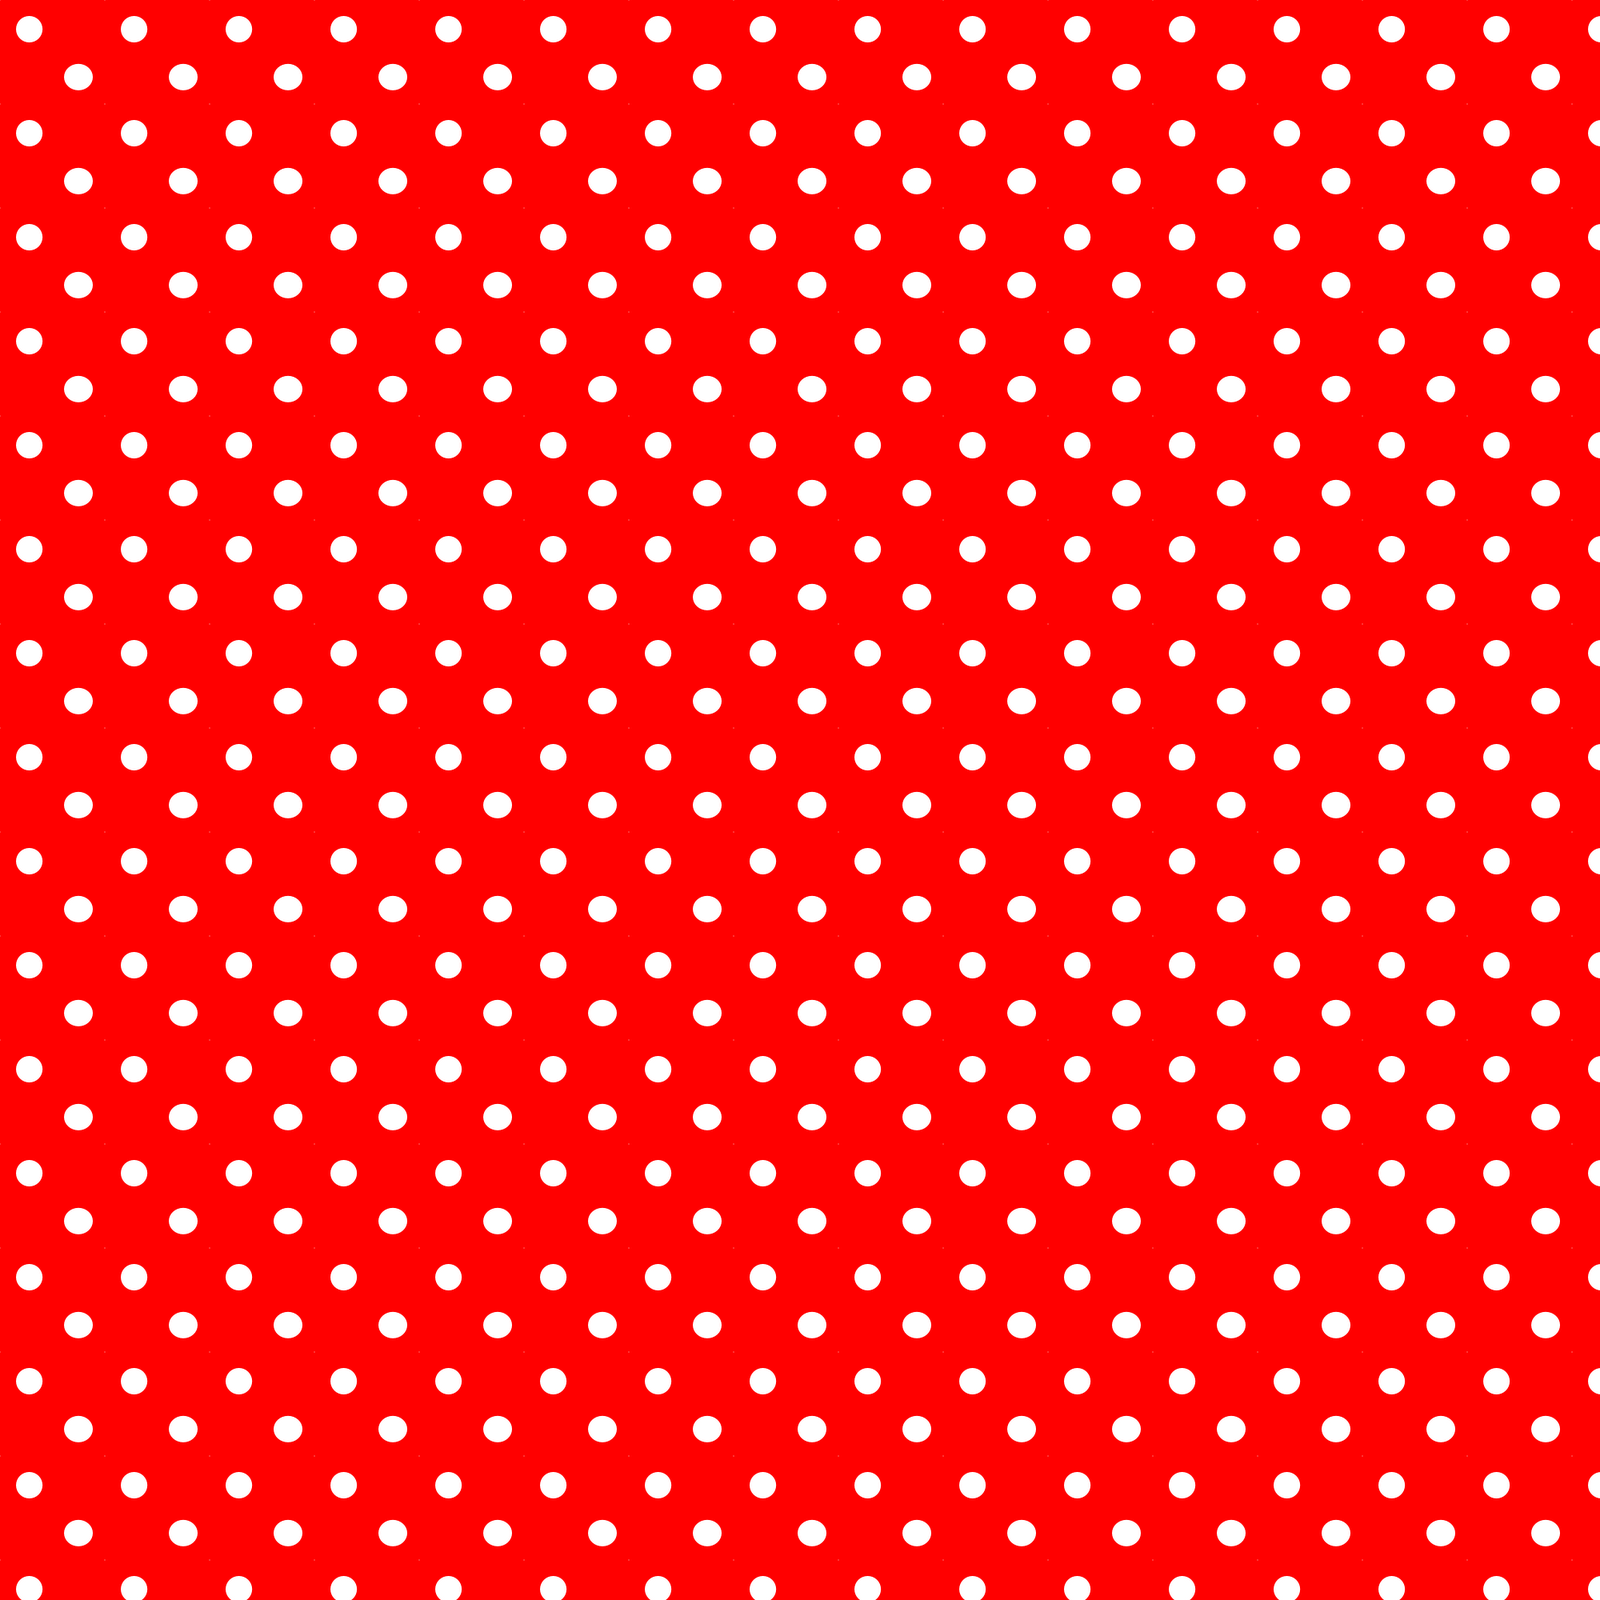 Red polka dot clipart graphic royalty free library Free red polka dot clip art - Clip Art Library graphic royalty free library